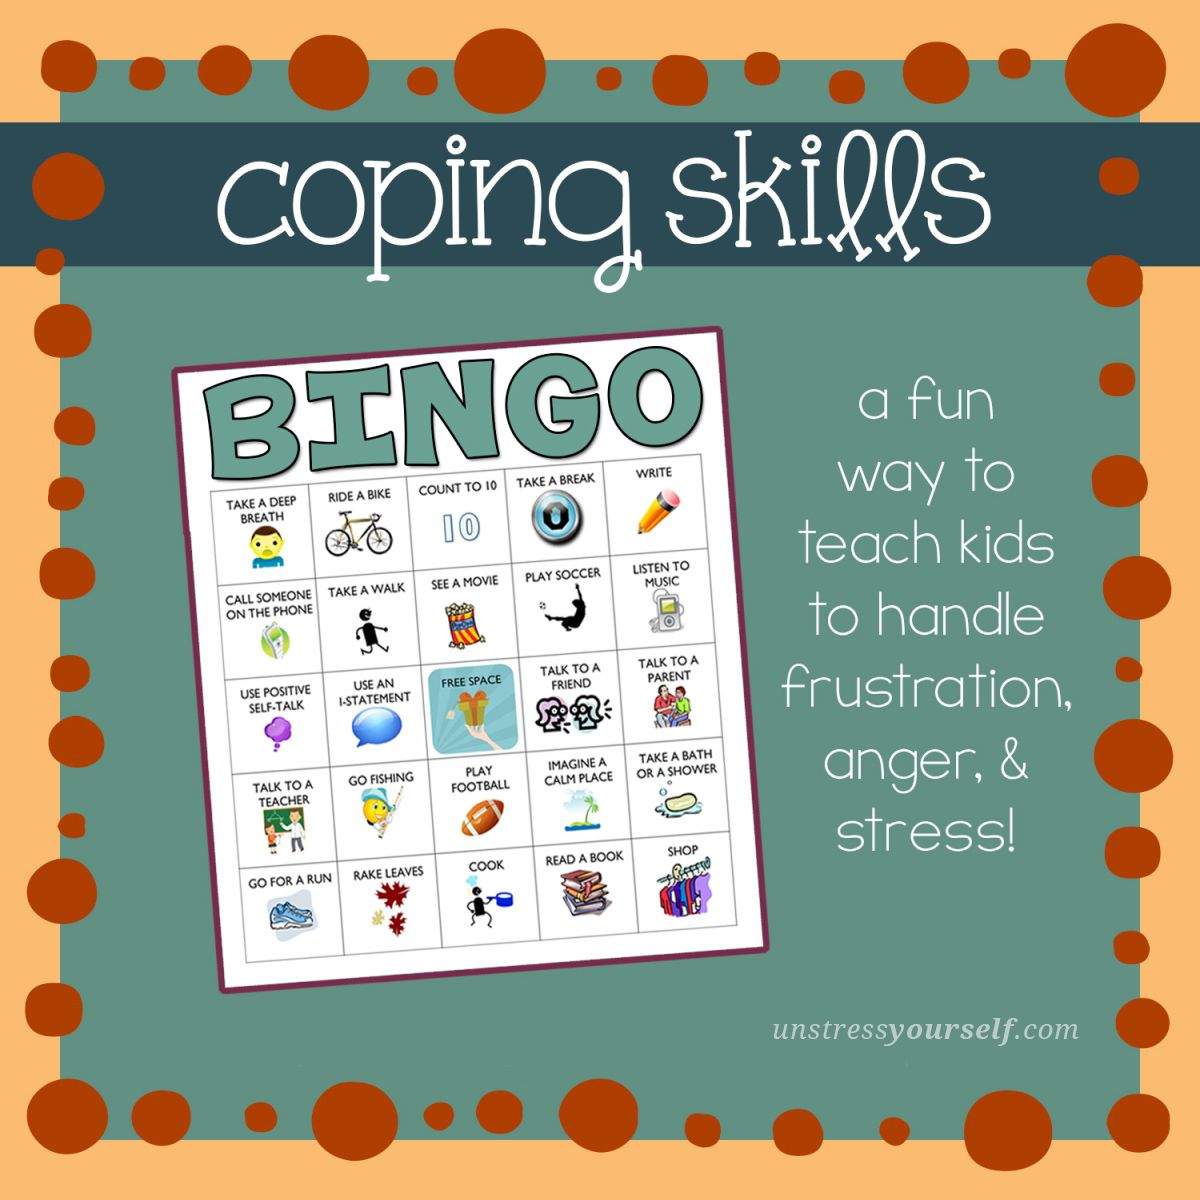 Worksheets Coping Skills Worksheets discover the top seven coping skills worksheets designed to help you learn more healthy ways cope with life problems effect